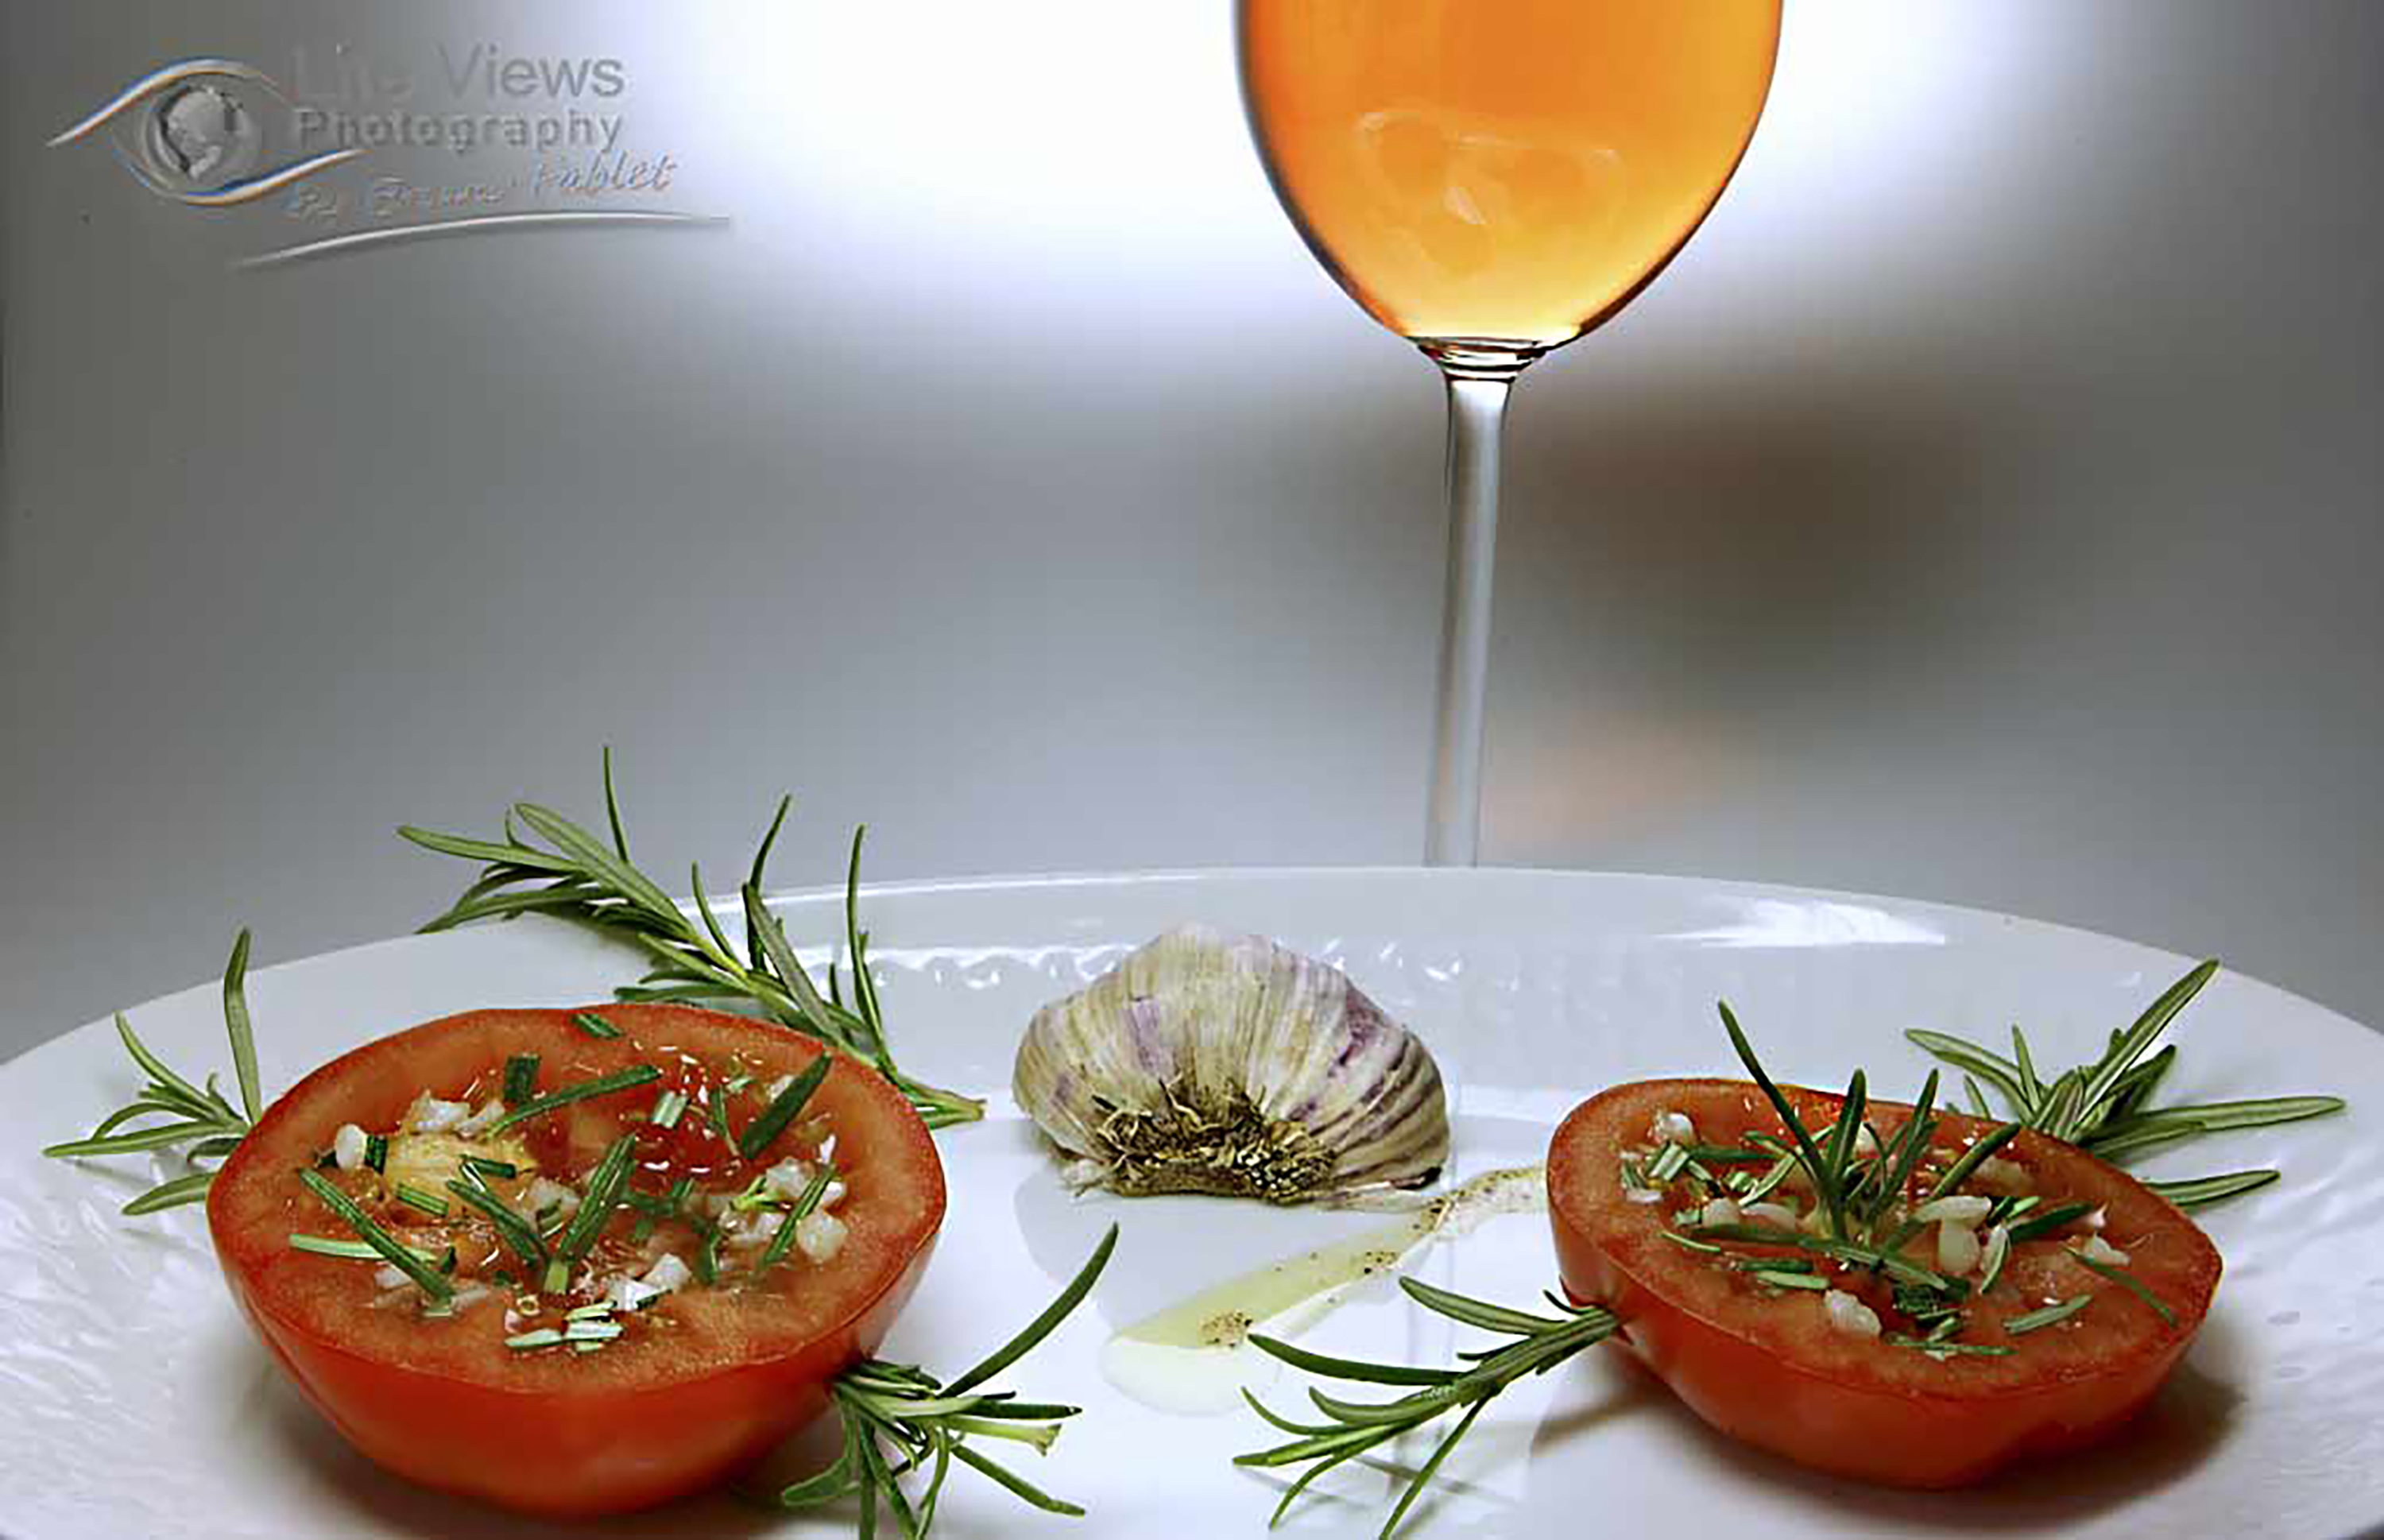 Photographie culinaire Life Views